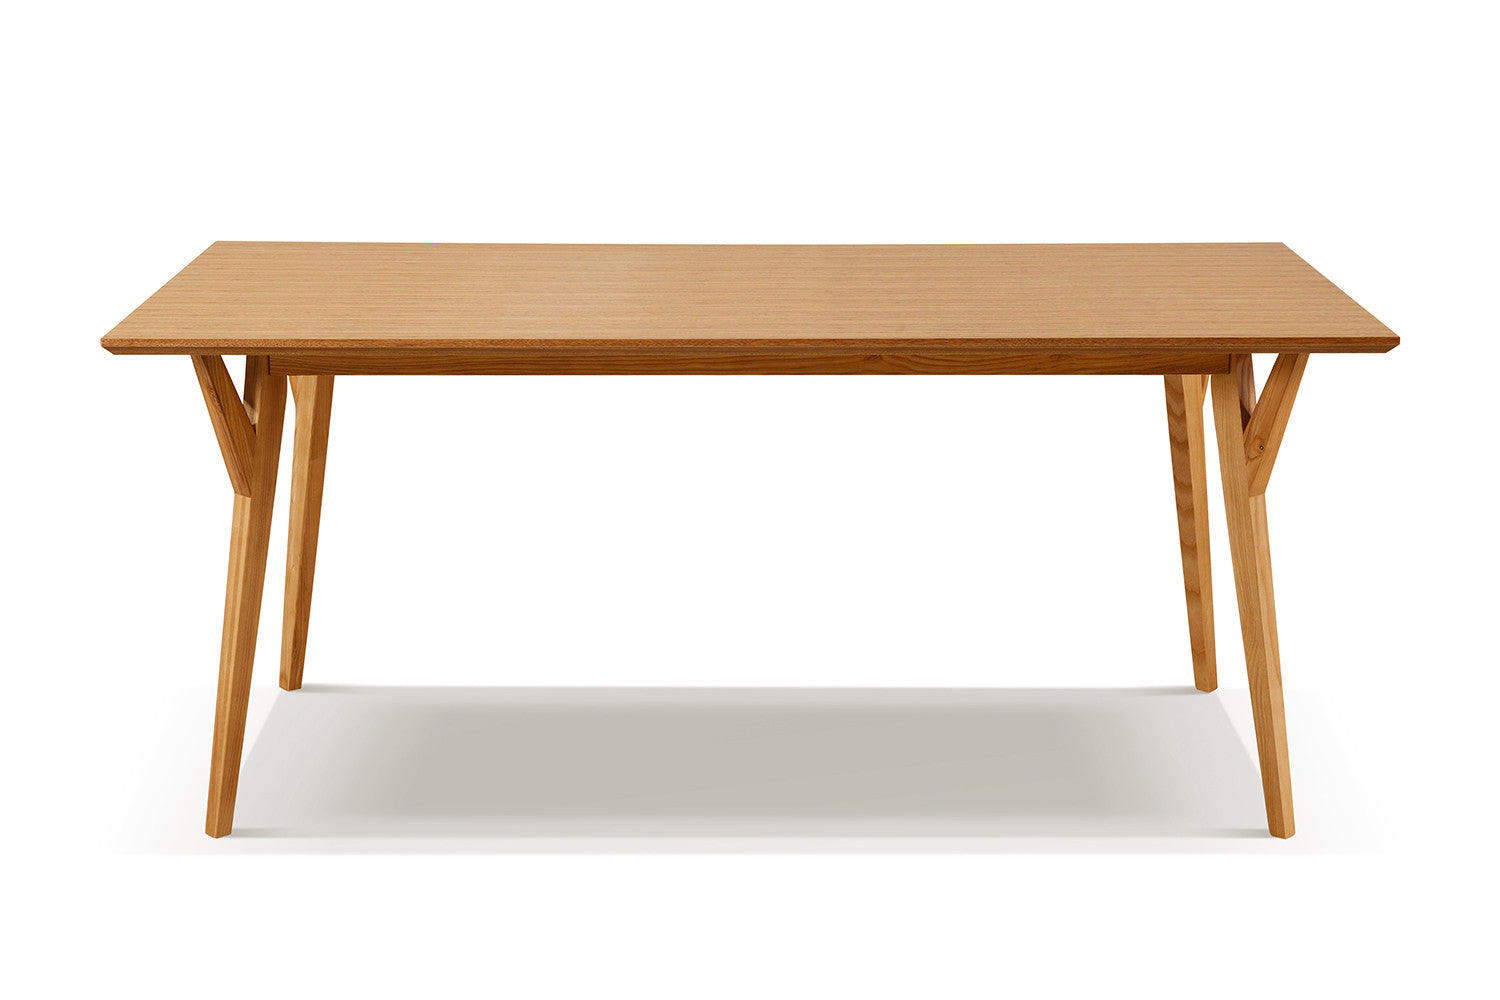 Table de salle manger scandinave en bois linth dewarens for Table scandinave bois massif